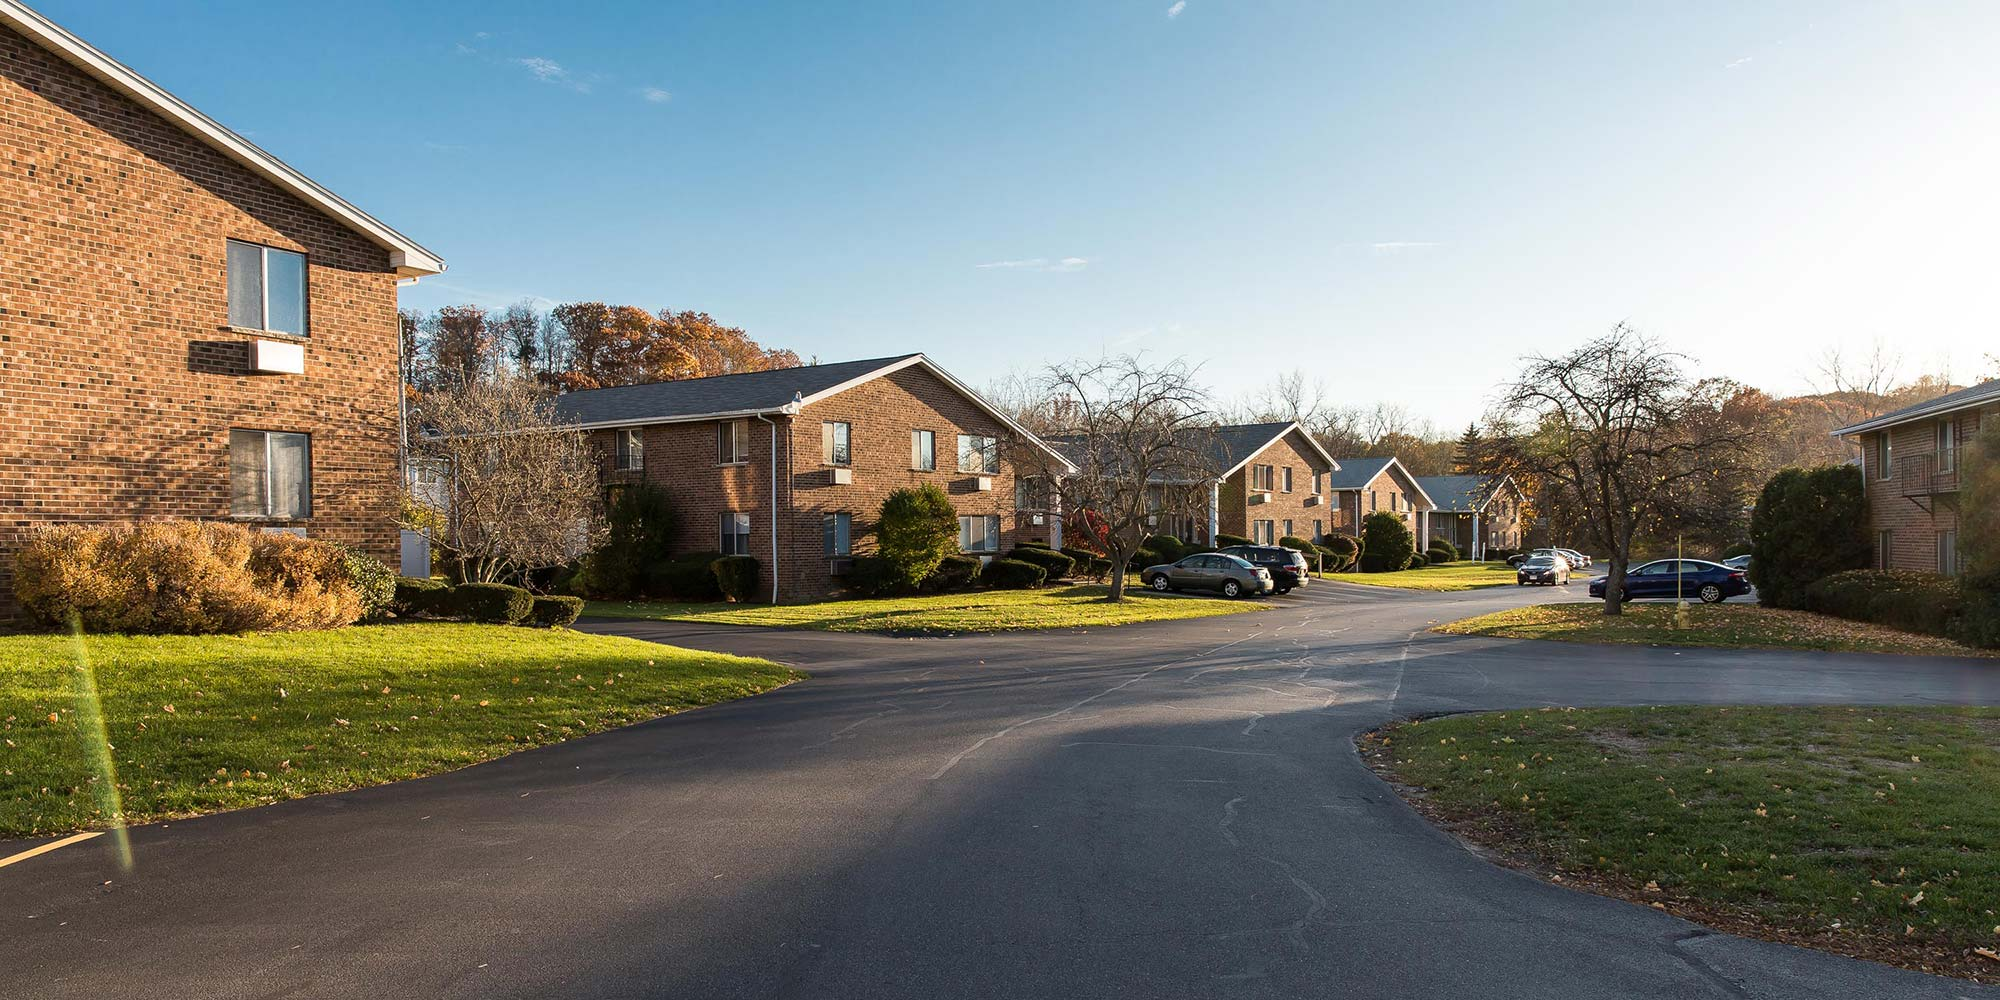 Pennwood Apartments features and amenities in Penfield NY